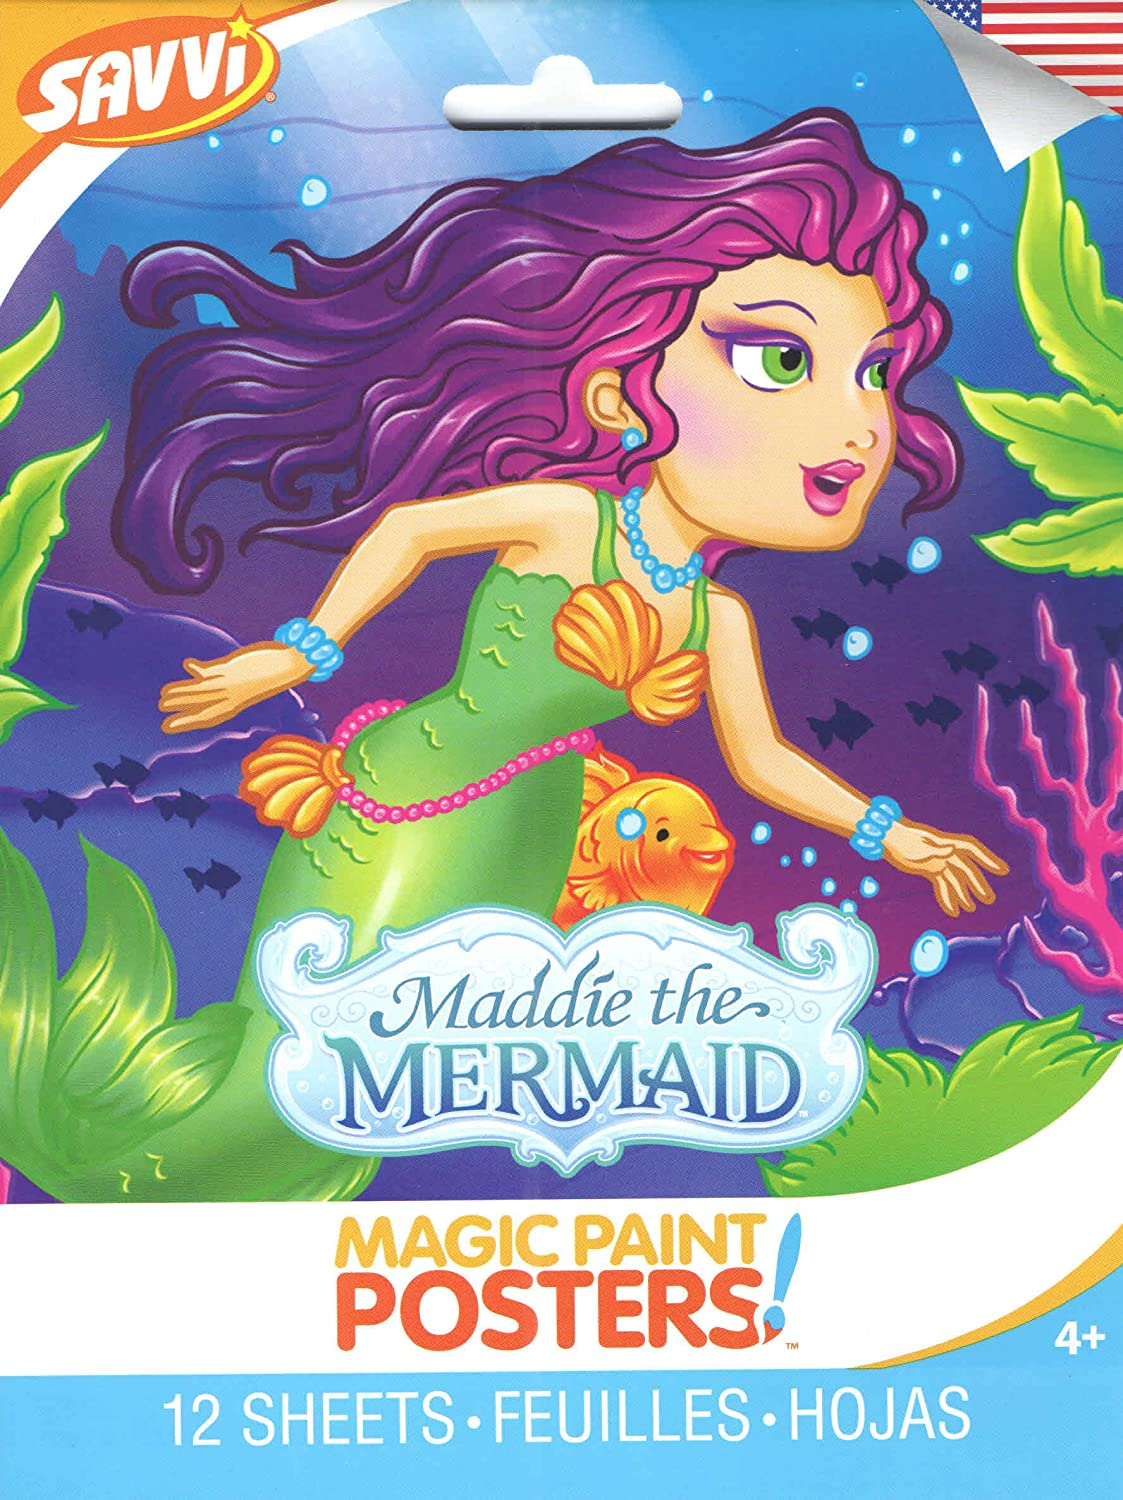 Savvi Magic Paint Posters ~ Maddie the Mermaid (A Mermaid Tale; 12 Posters, 6 x 8) 6 x 8)